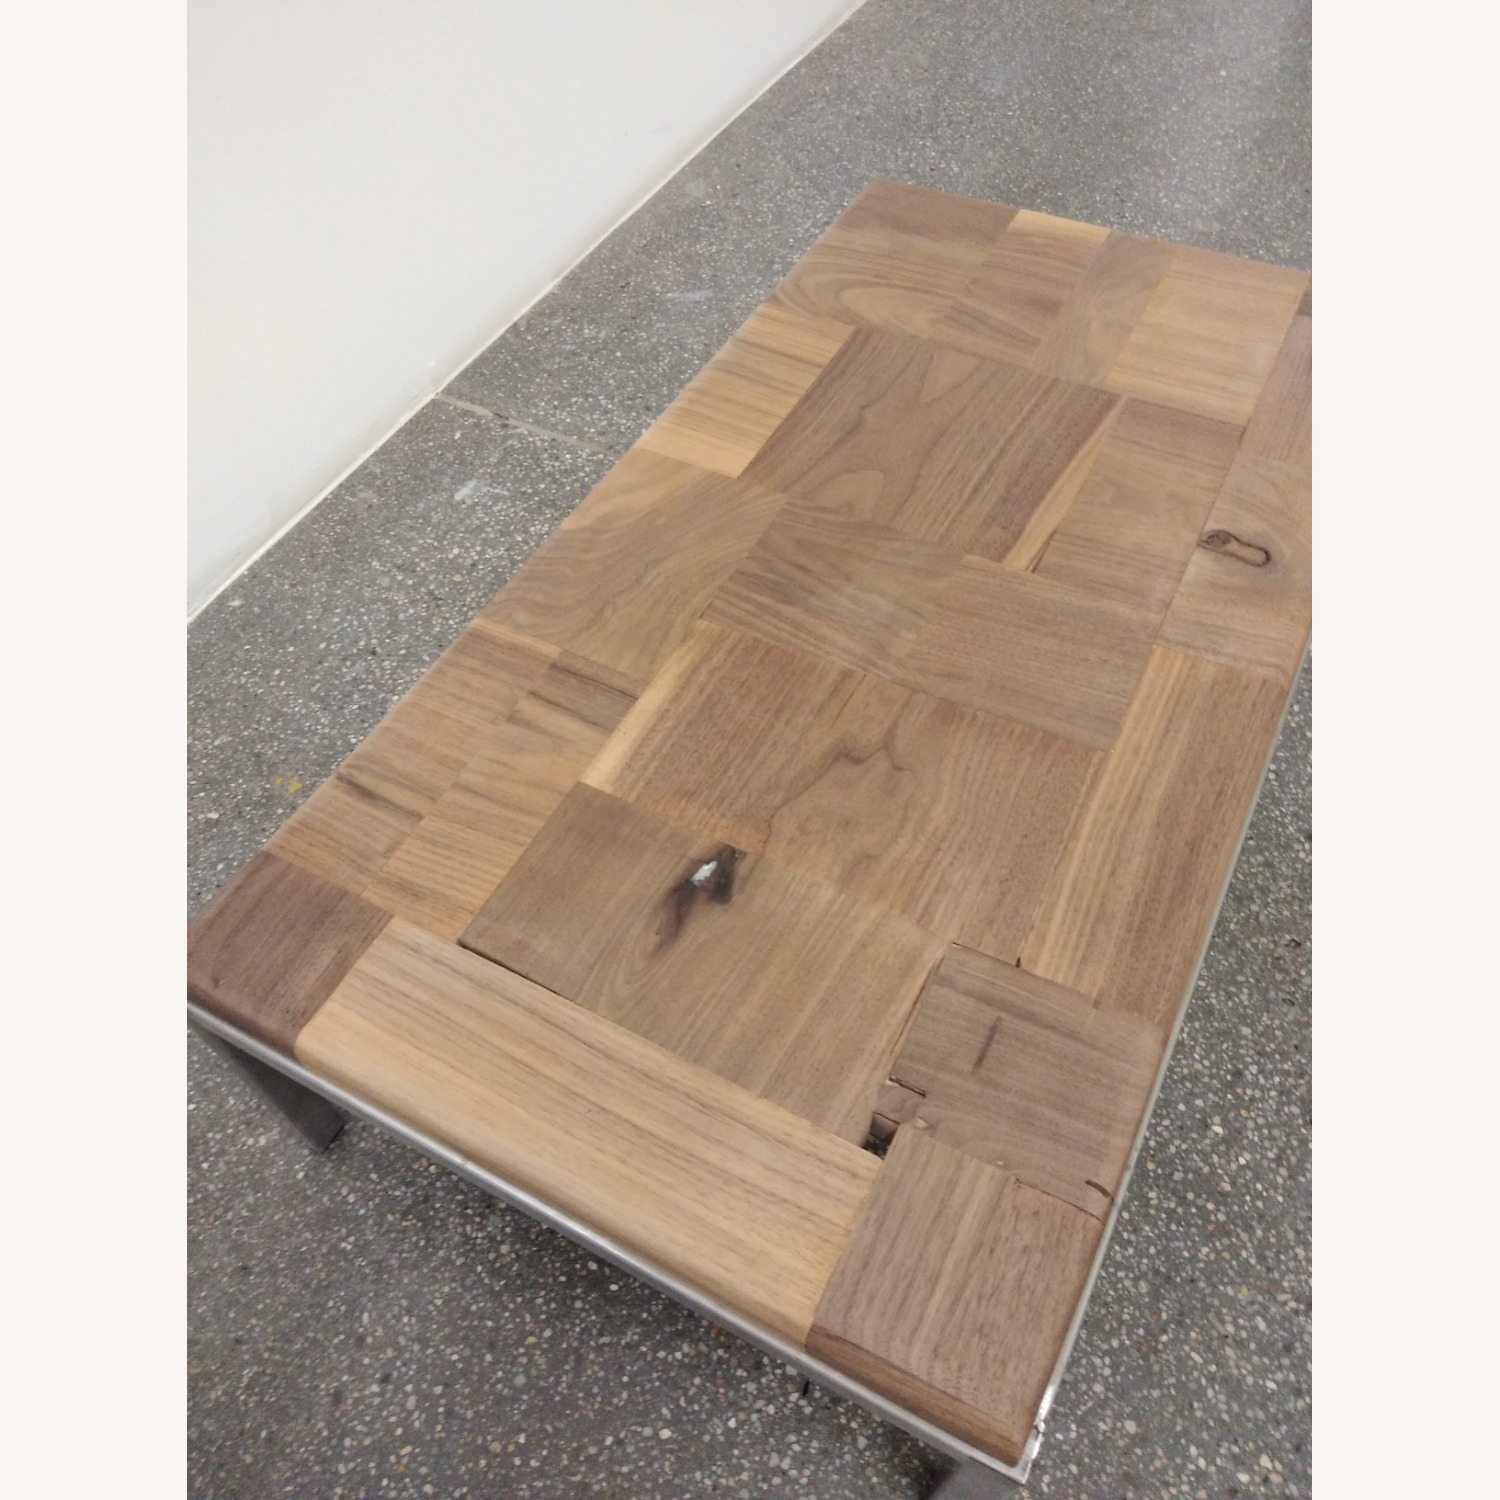 Restoration Hardware Solid Walnut Mosaic Coffee Table - image-8